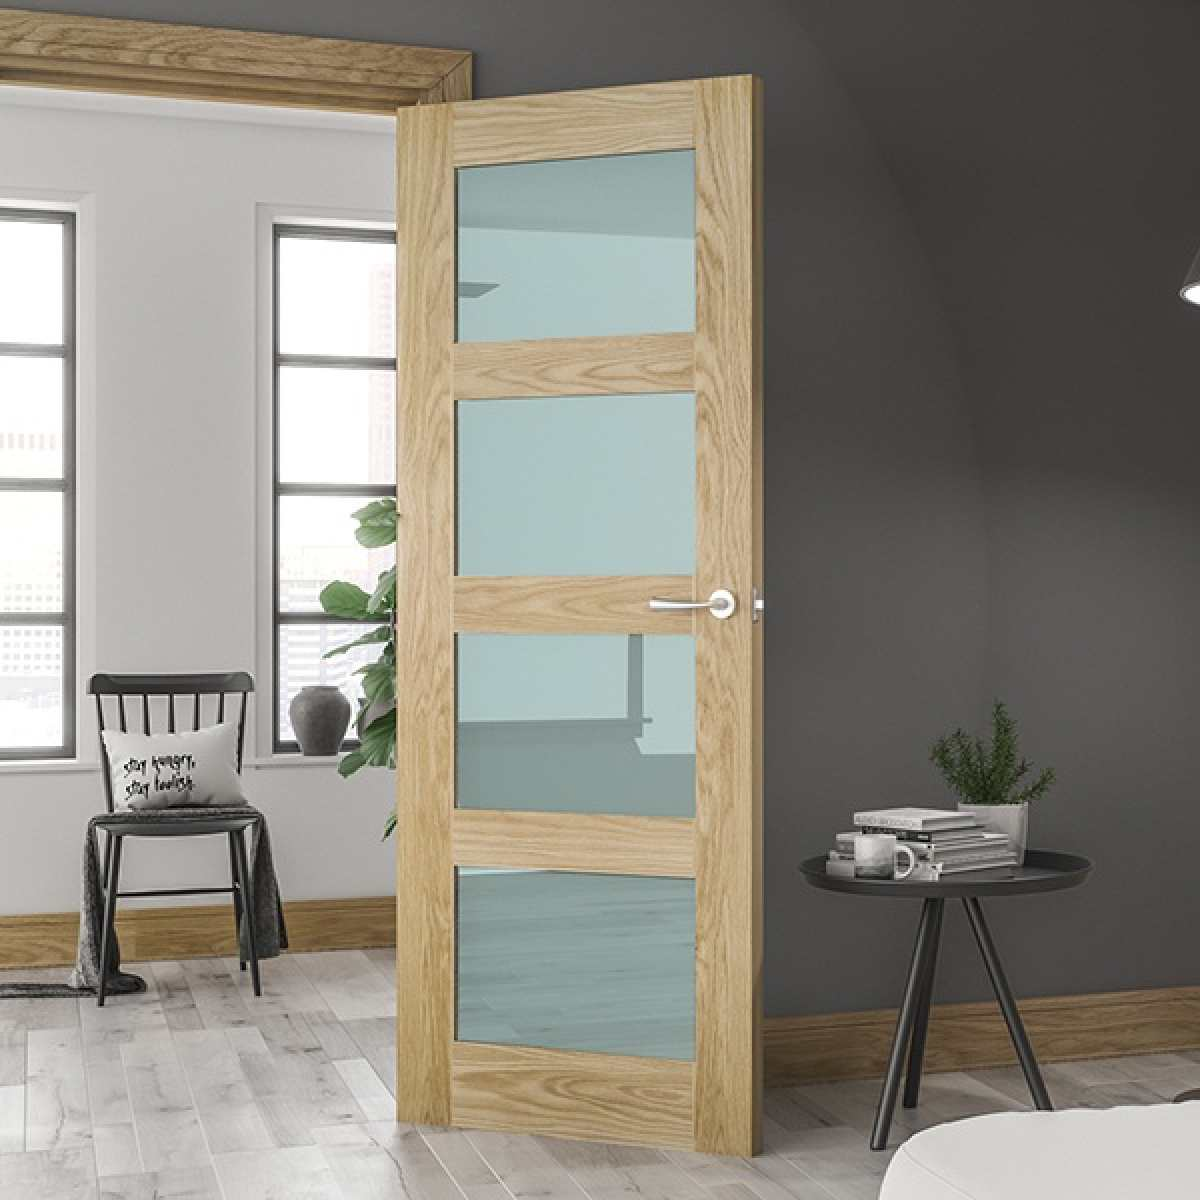 Coventry glazed oak lifestyle websters Image by Websters Timber